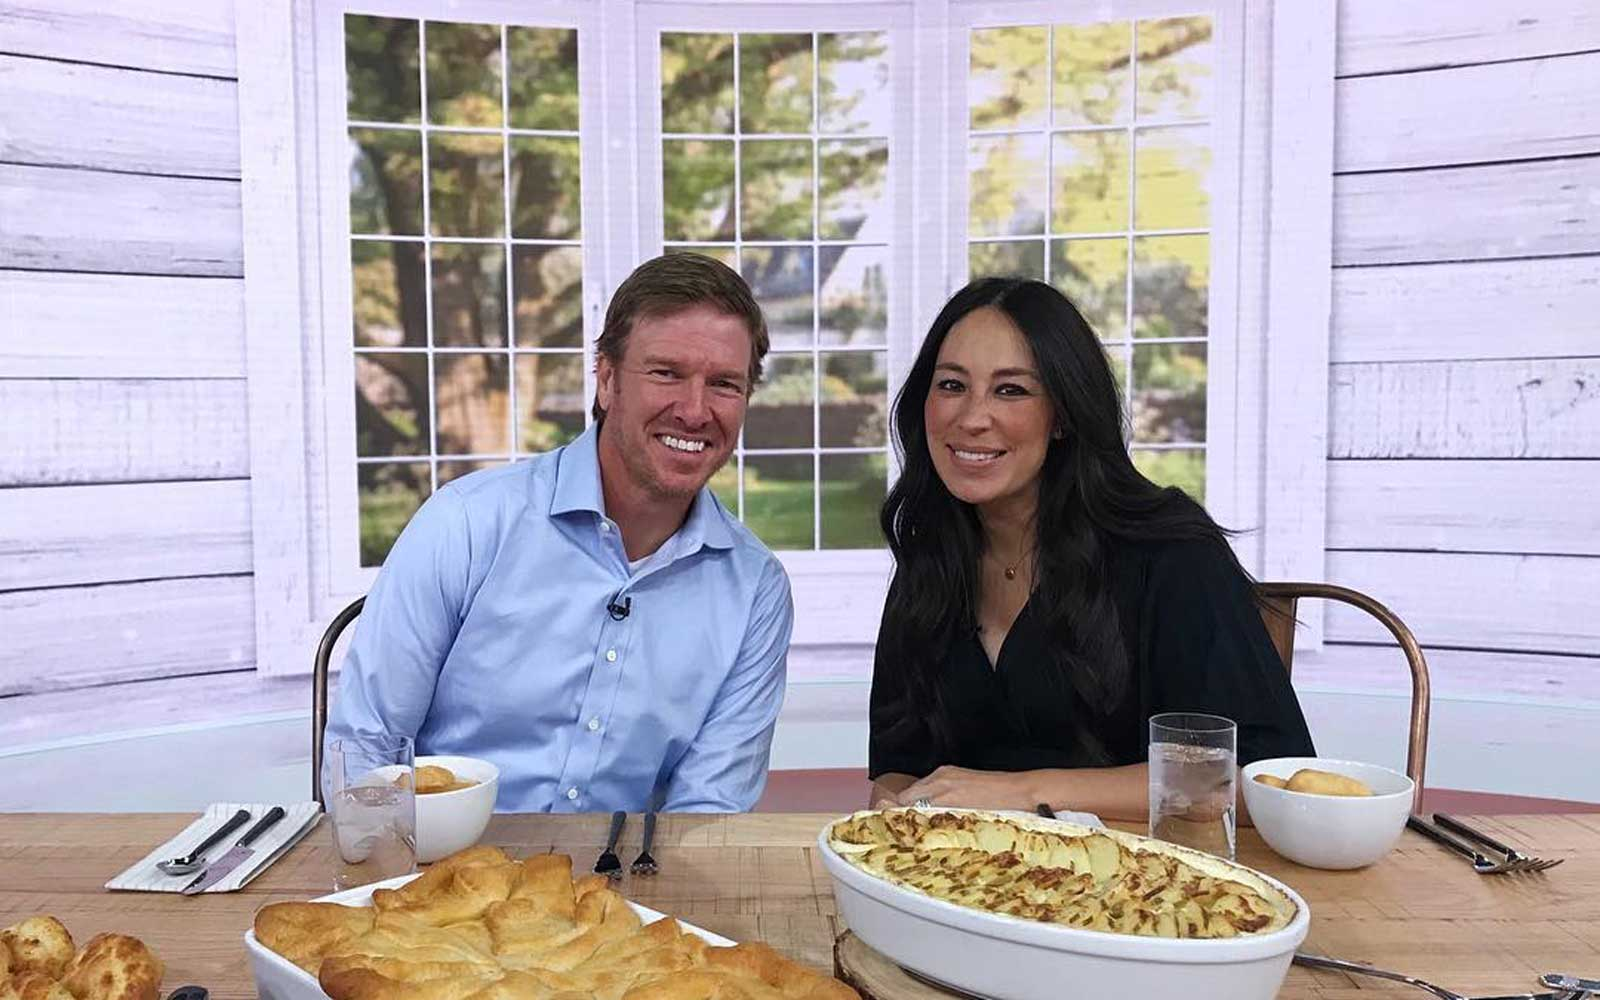 Chip and Joanna Gaines kicking off launch of 'Magnolia Table' on the 'Today Show'